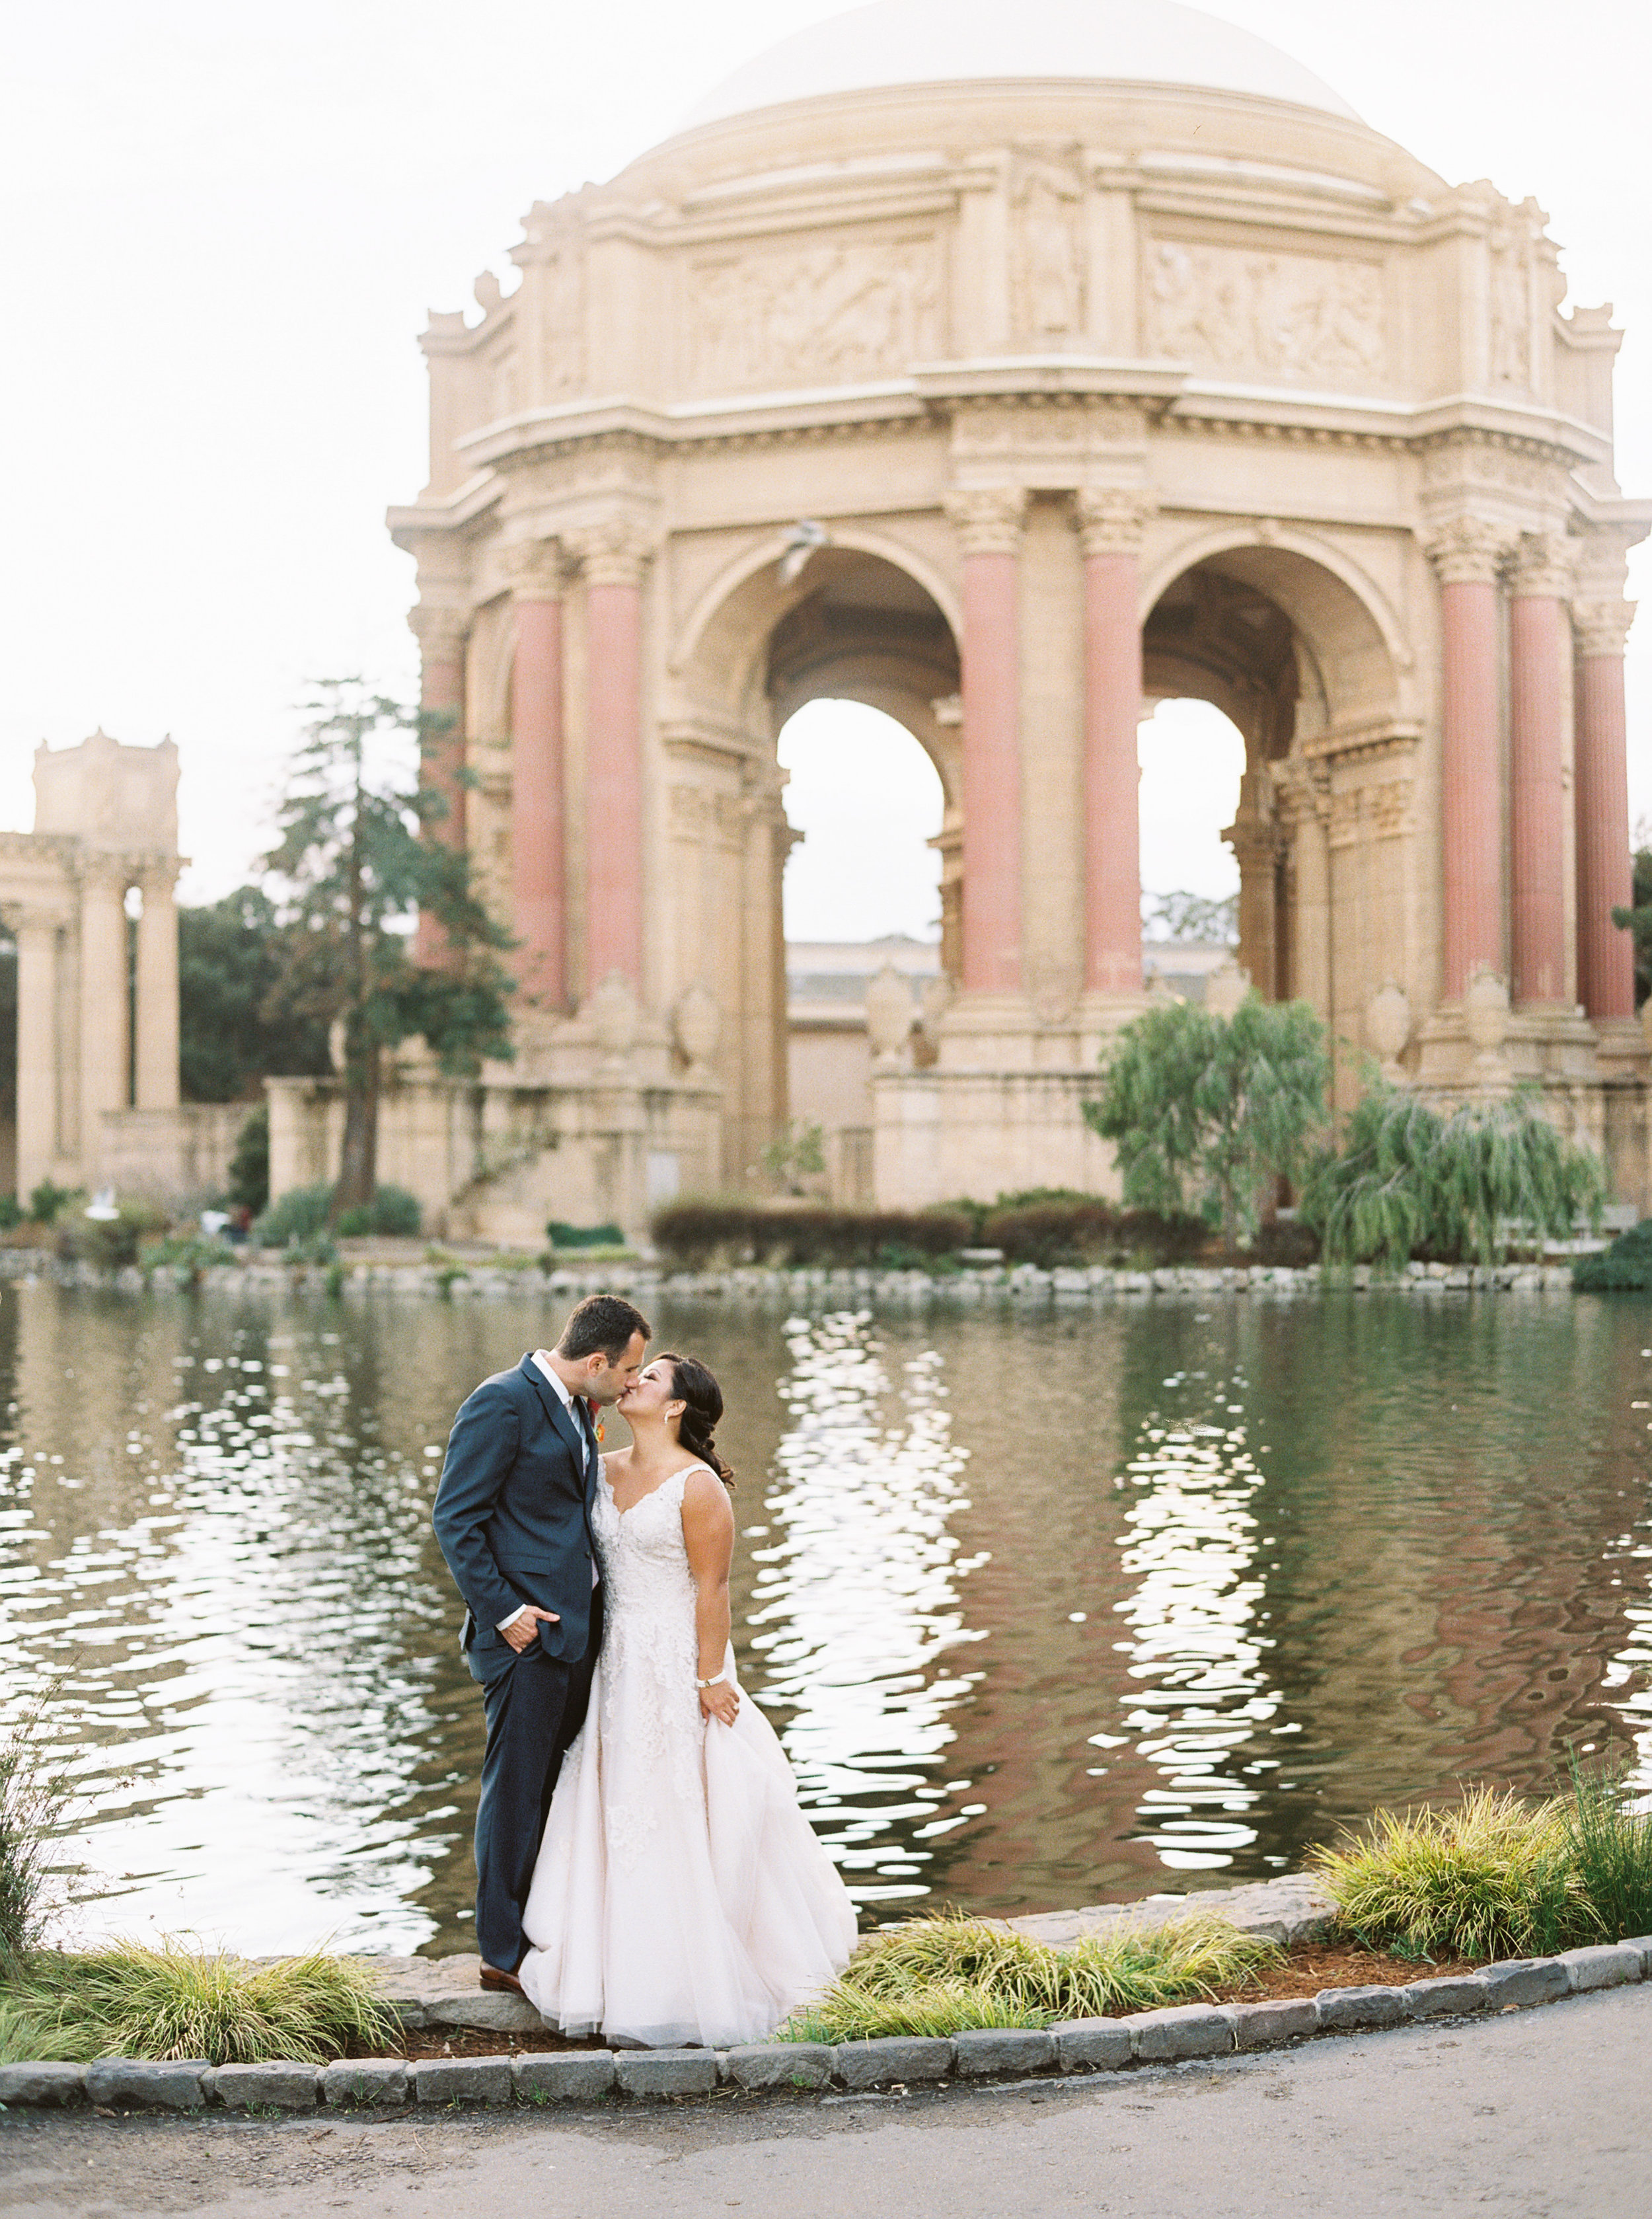 style-inspired-wedding-at-firehouse-8-in-san-francisco-144.jpg